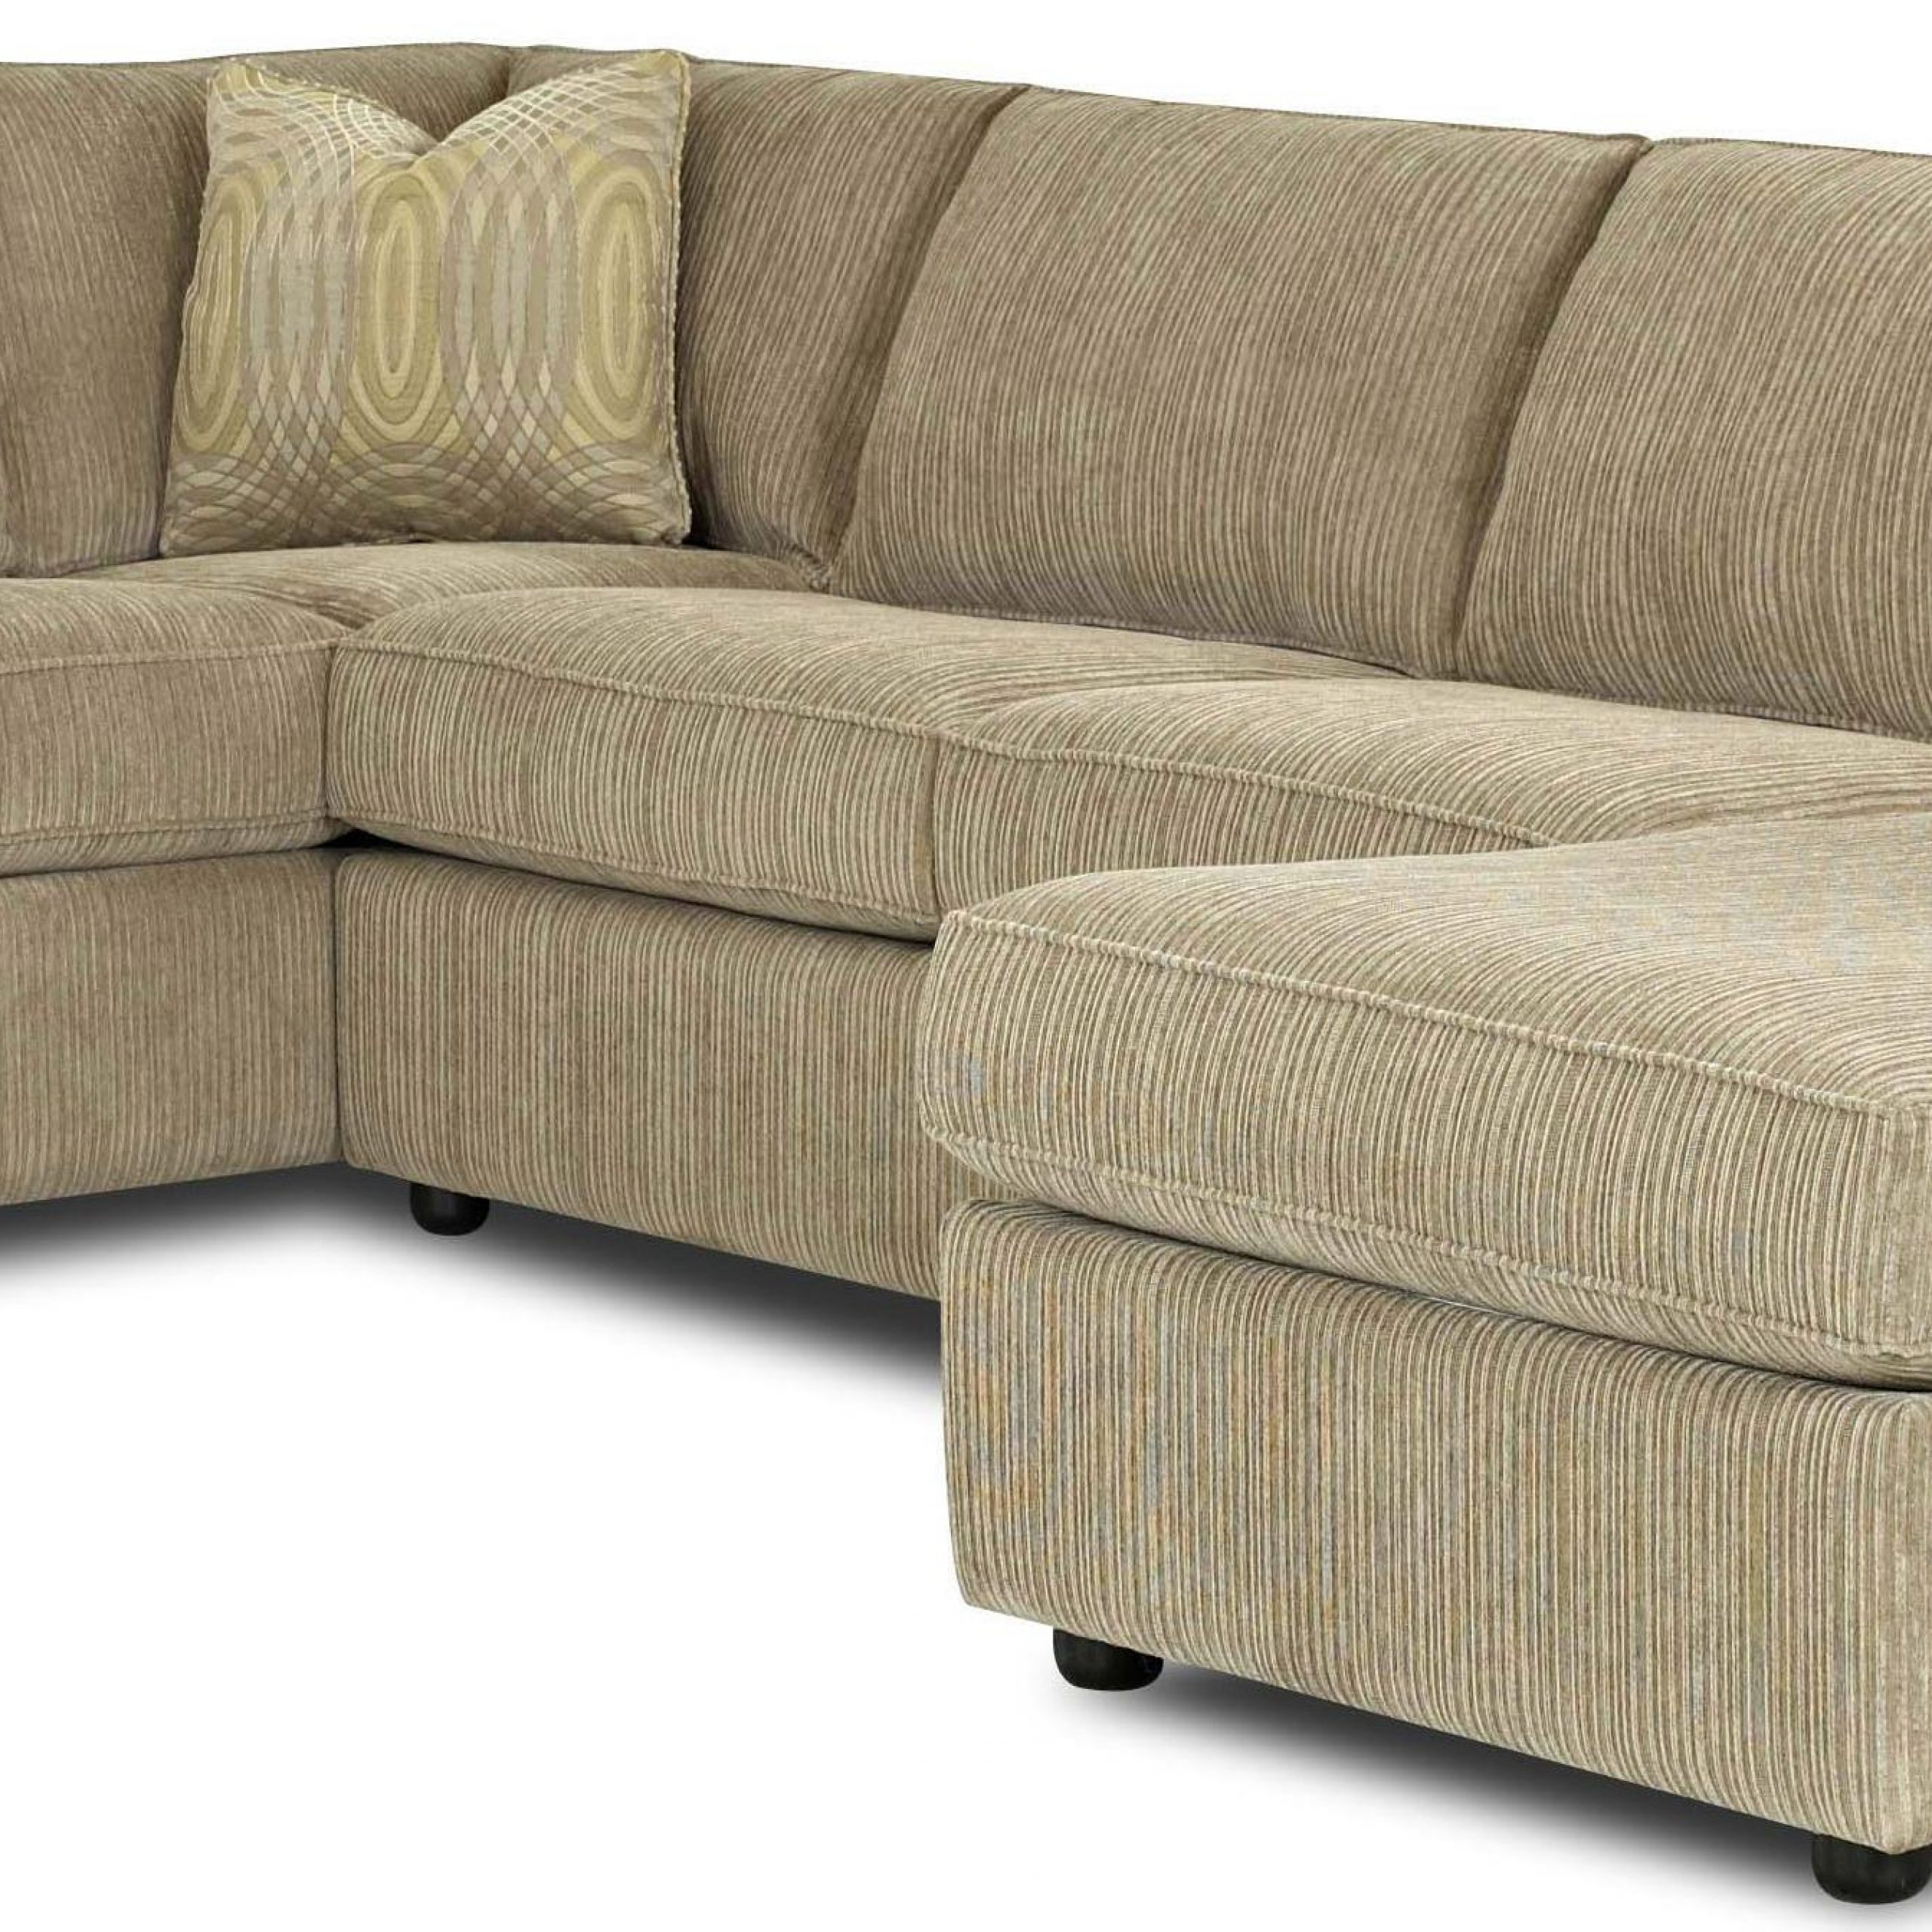 Transitional Sectional Sofa With Rolled Arms And Left Intended For Most Up To Date Copenhagen Reclining Sectional Sofas With Left Storage Chaise (View 23 of 25)